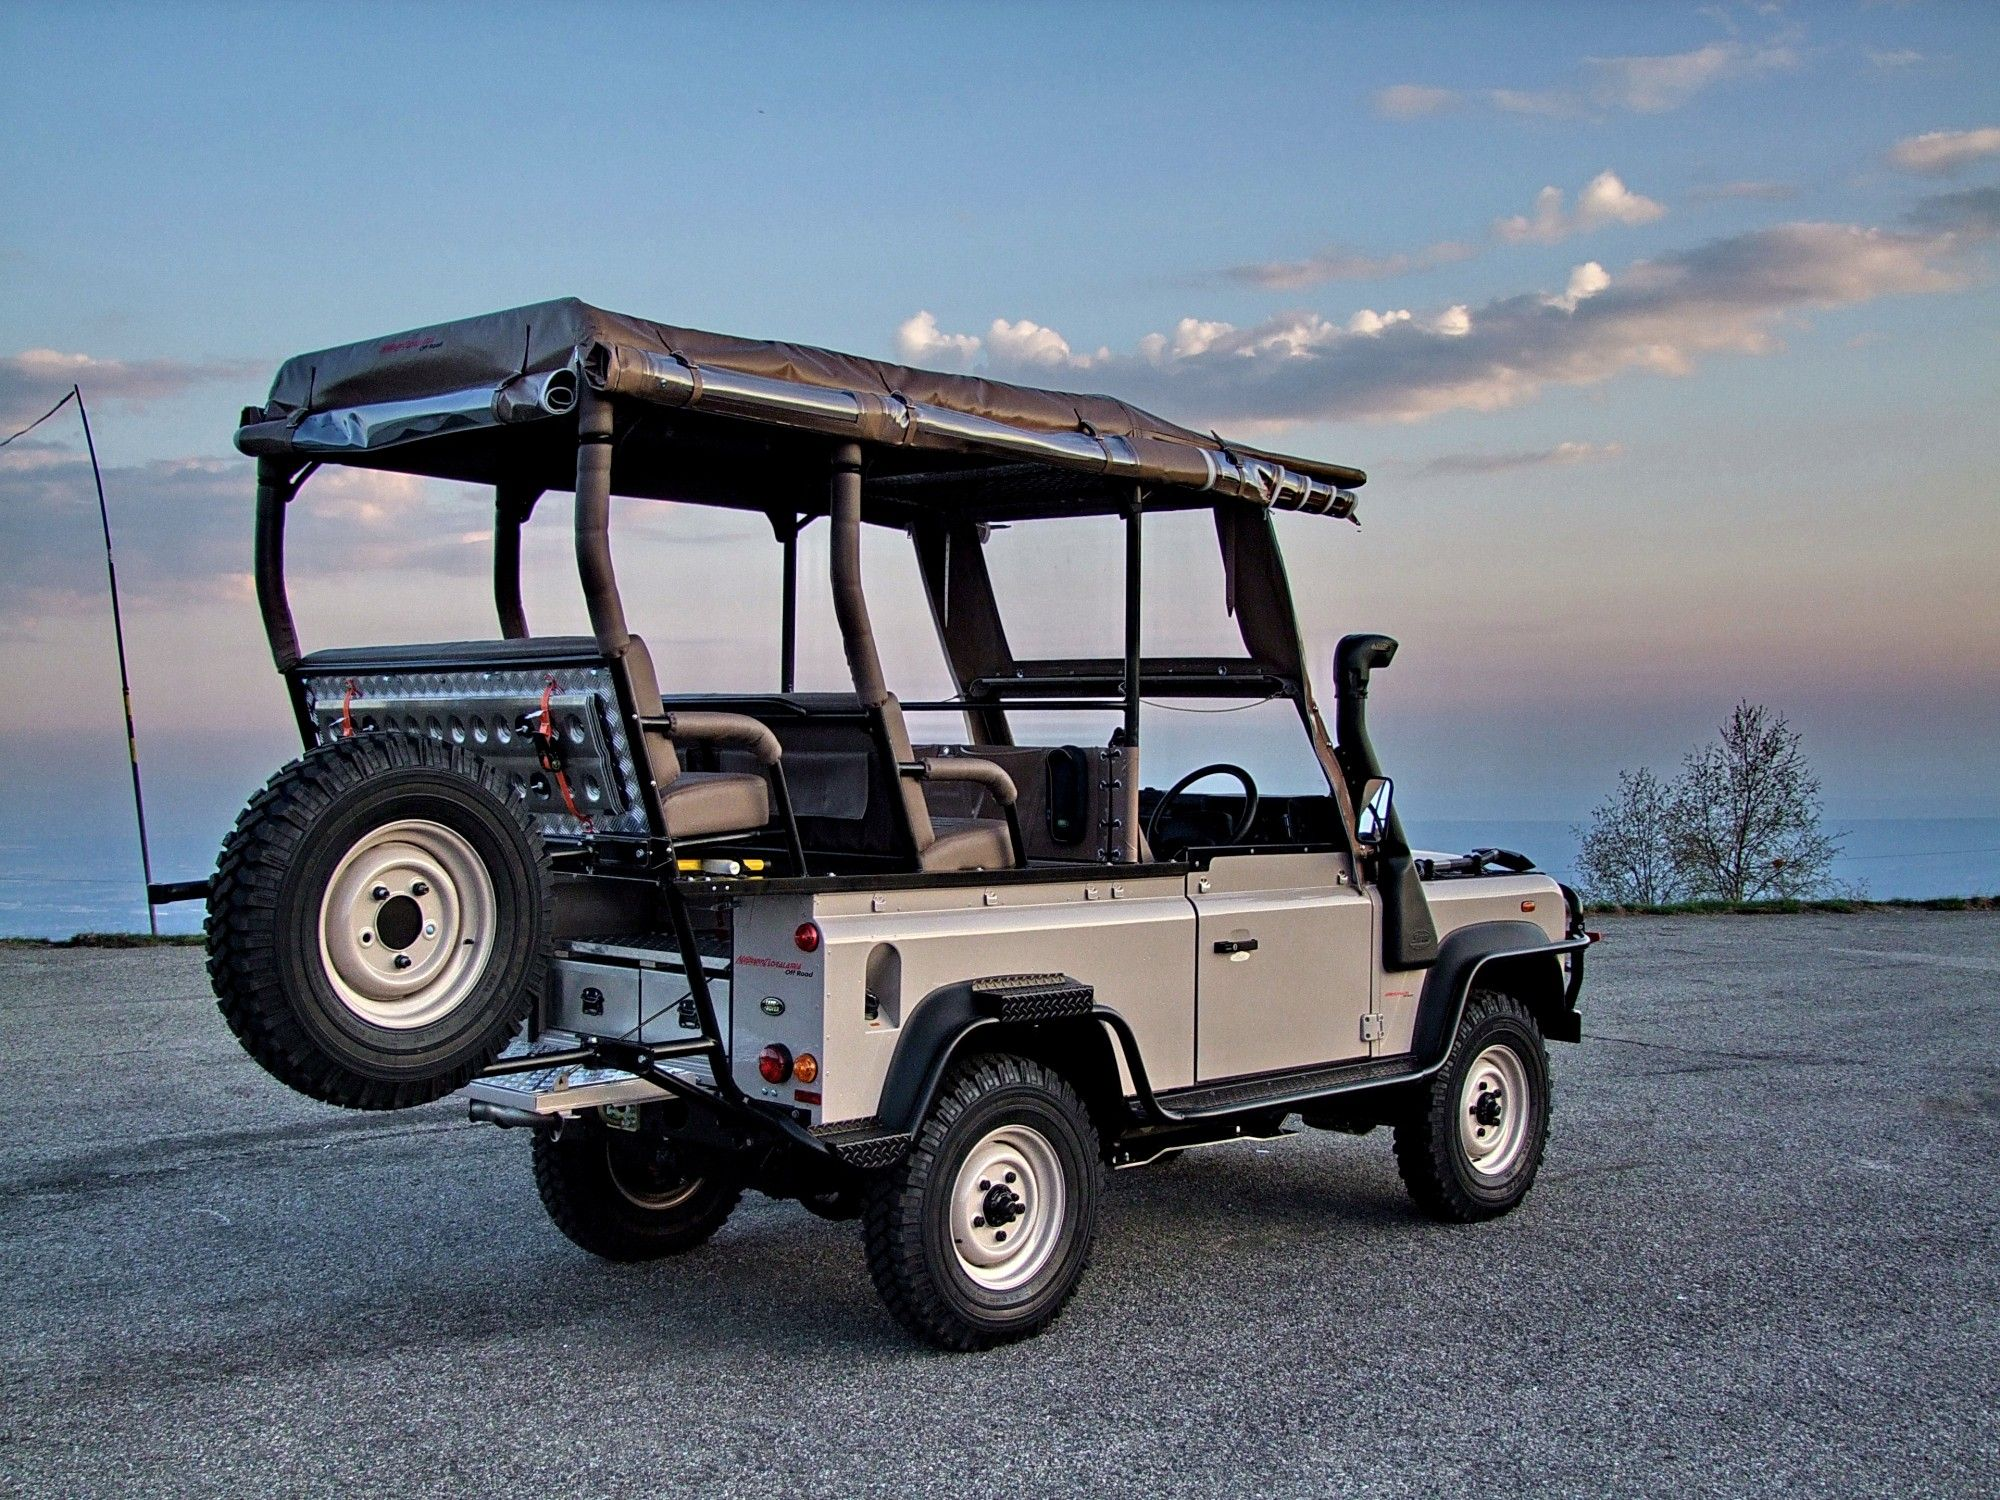 Special Land Rover Defender Game Viewer for Kenya Safari Park by